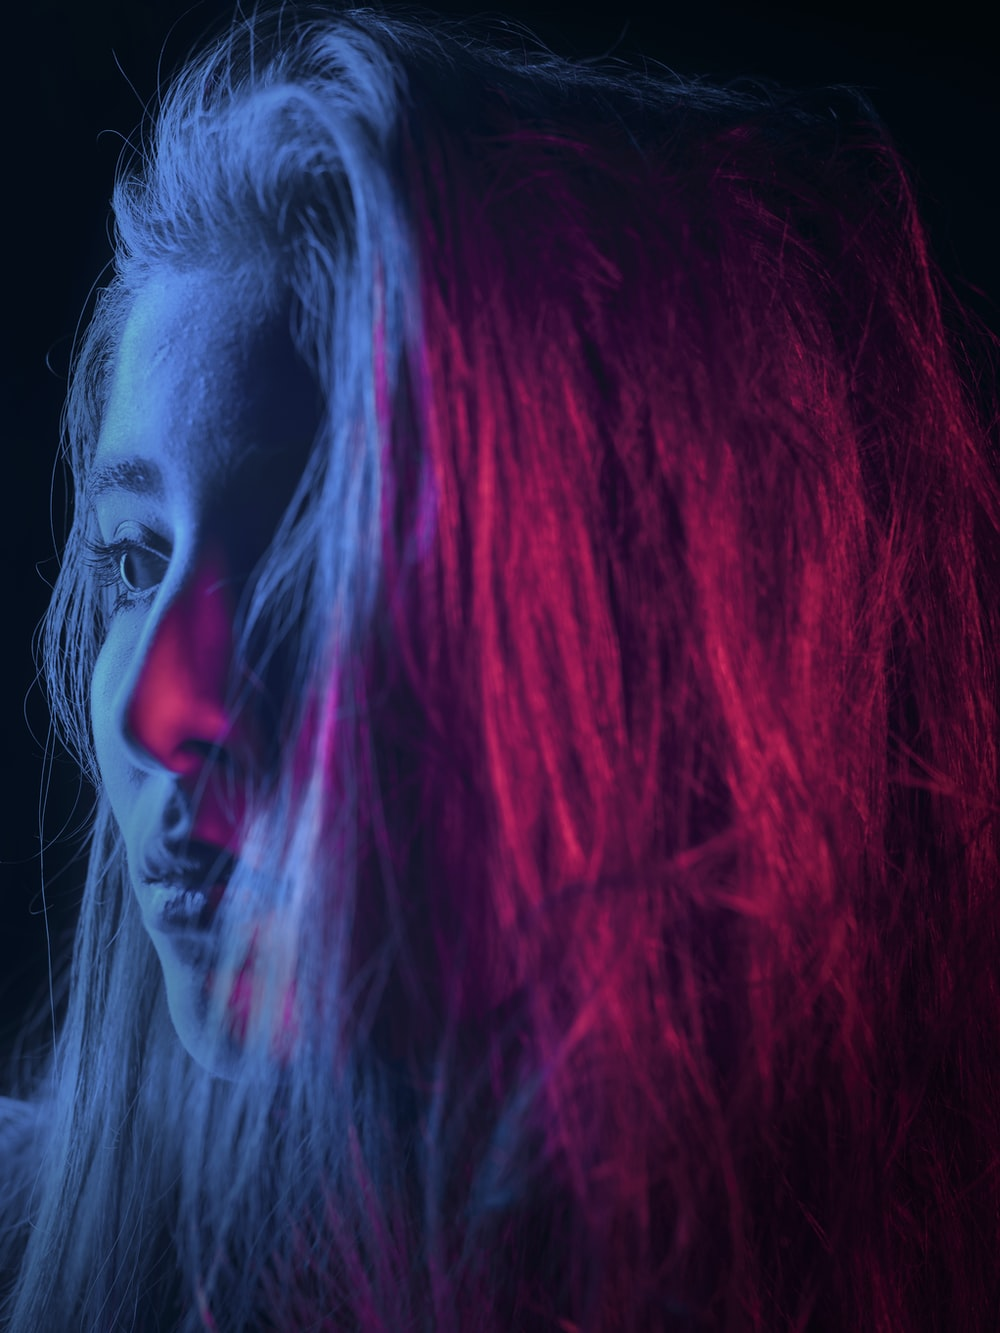 closeup photography of woman's hair with light reflection